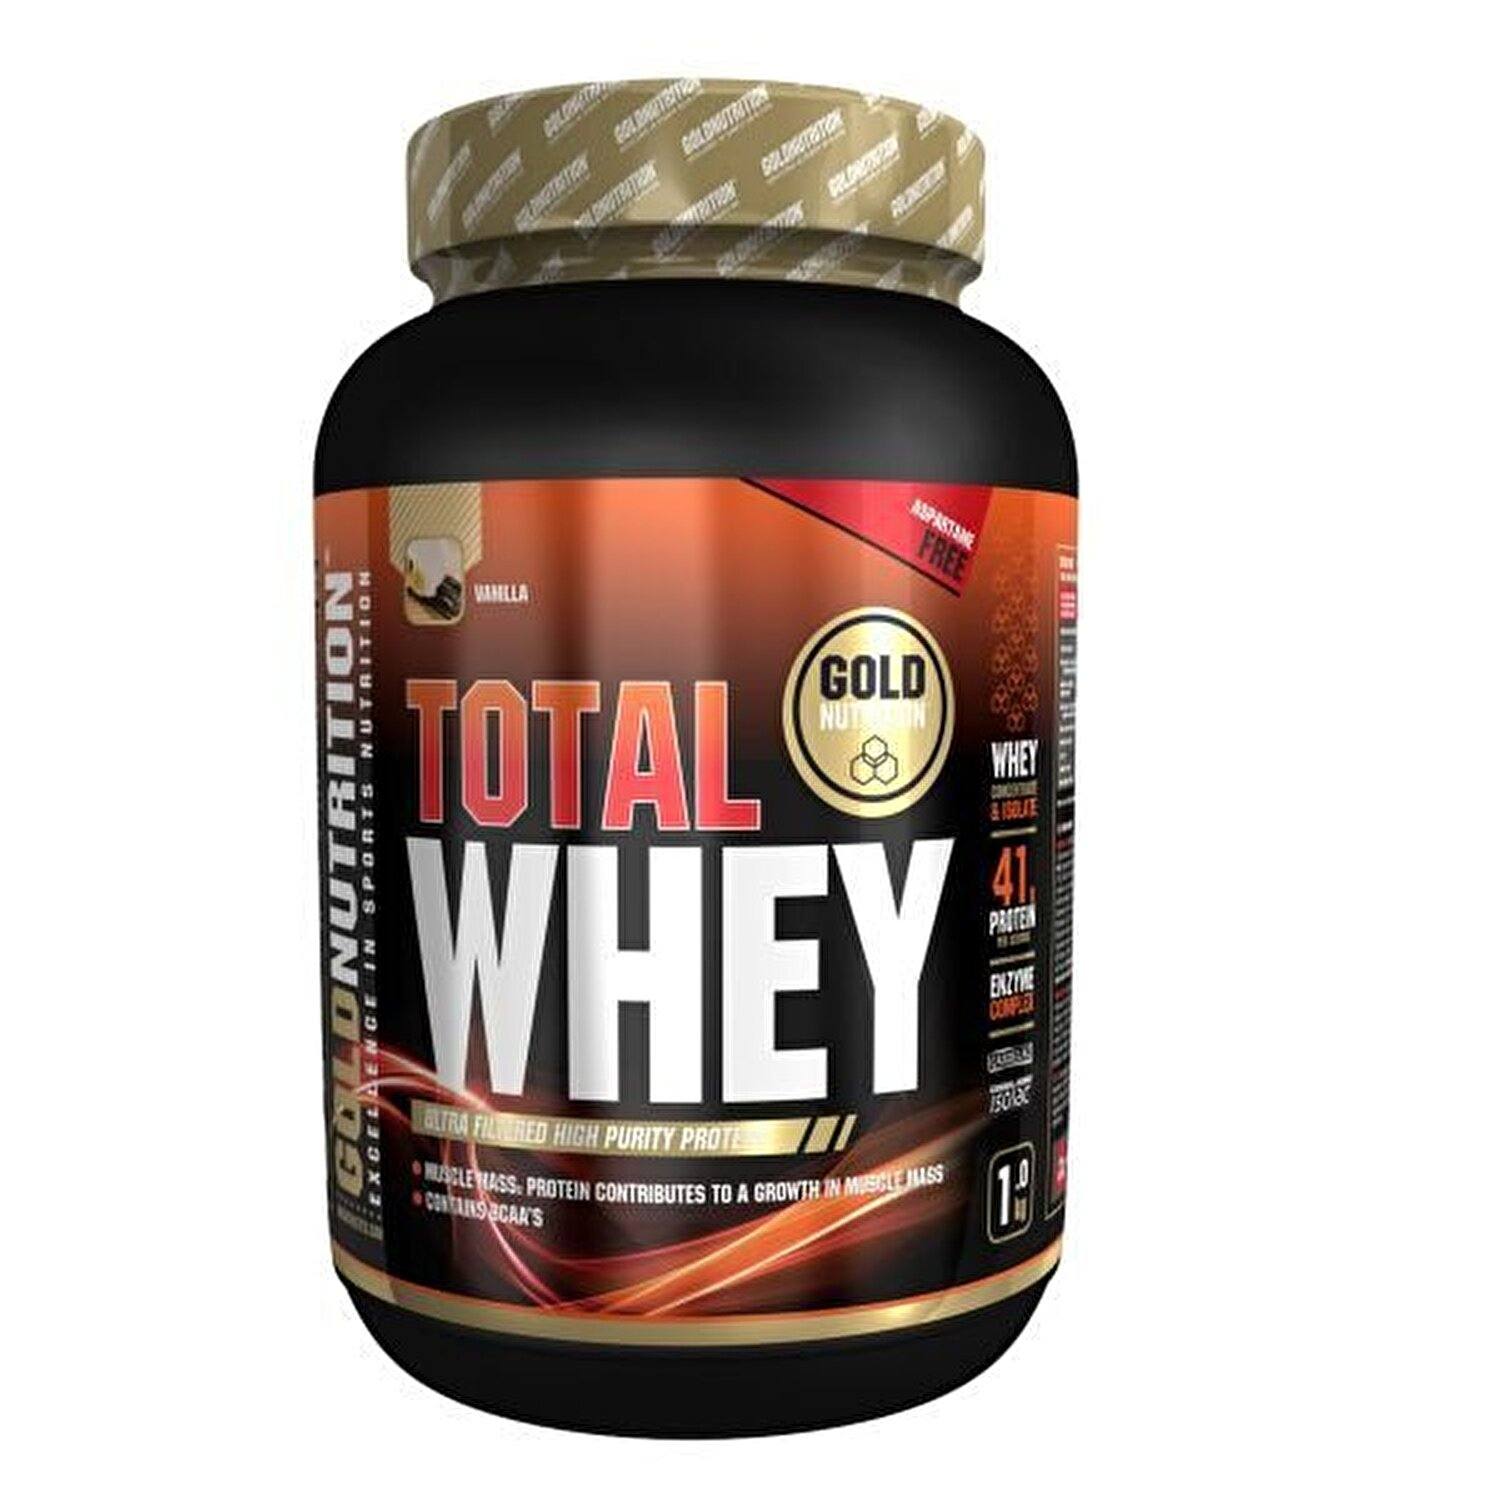 GoldNutrition - Pudra proteica, GoldNutrition, TOTAL WHEY PROTEIN ...